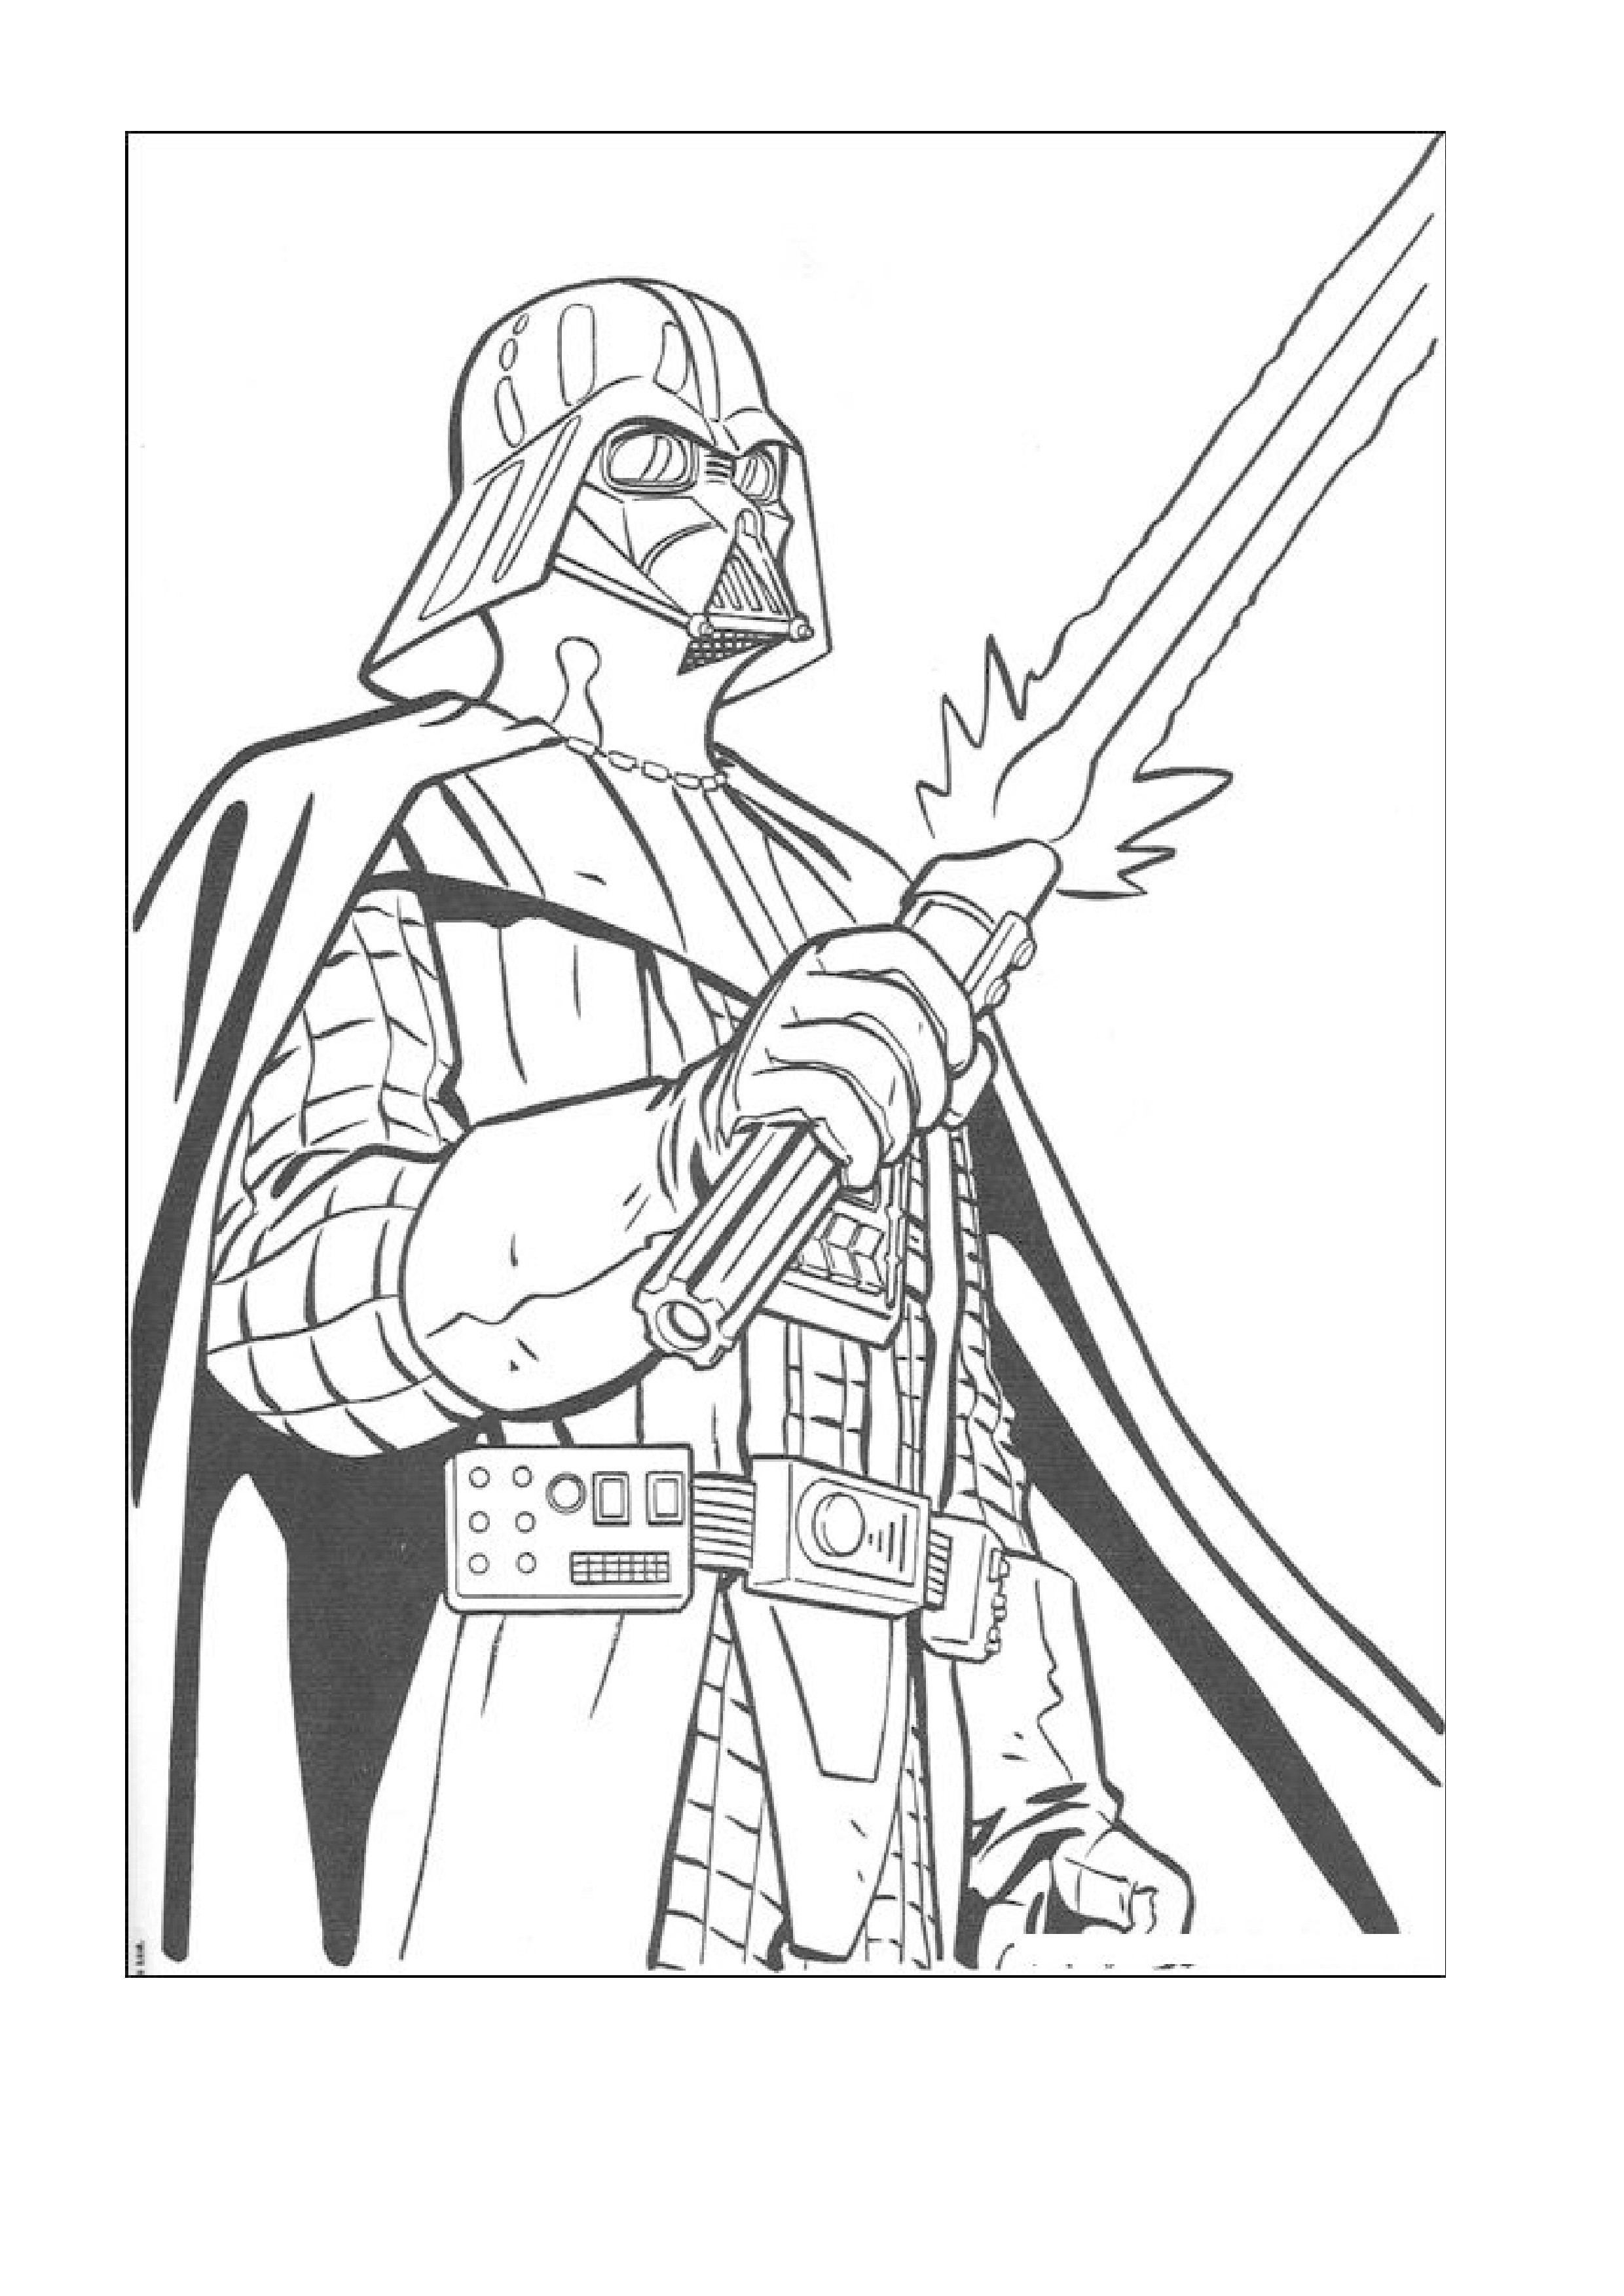 darth maul coloring pages star wars coloring pages jabba the hutt coloringbay darth pages maul coloring